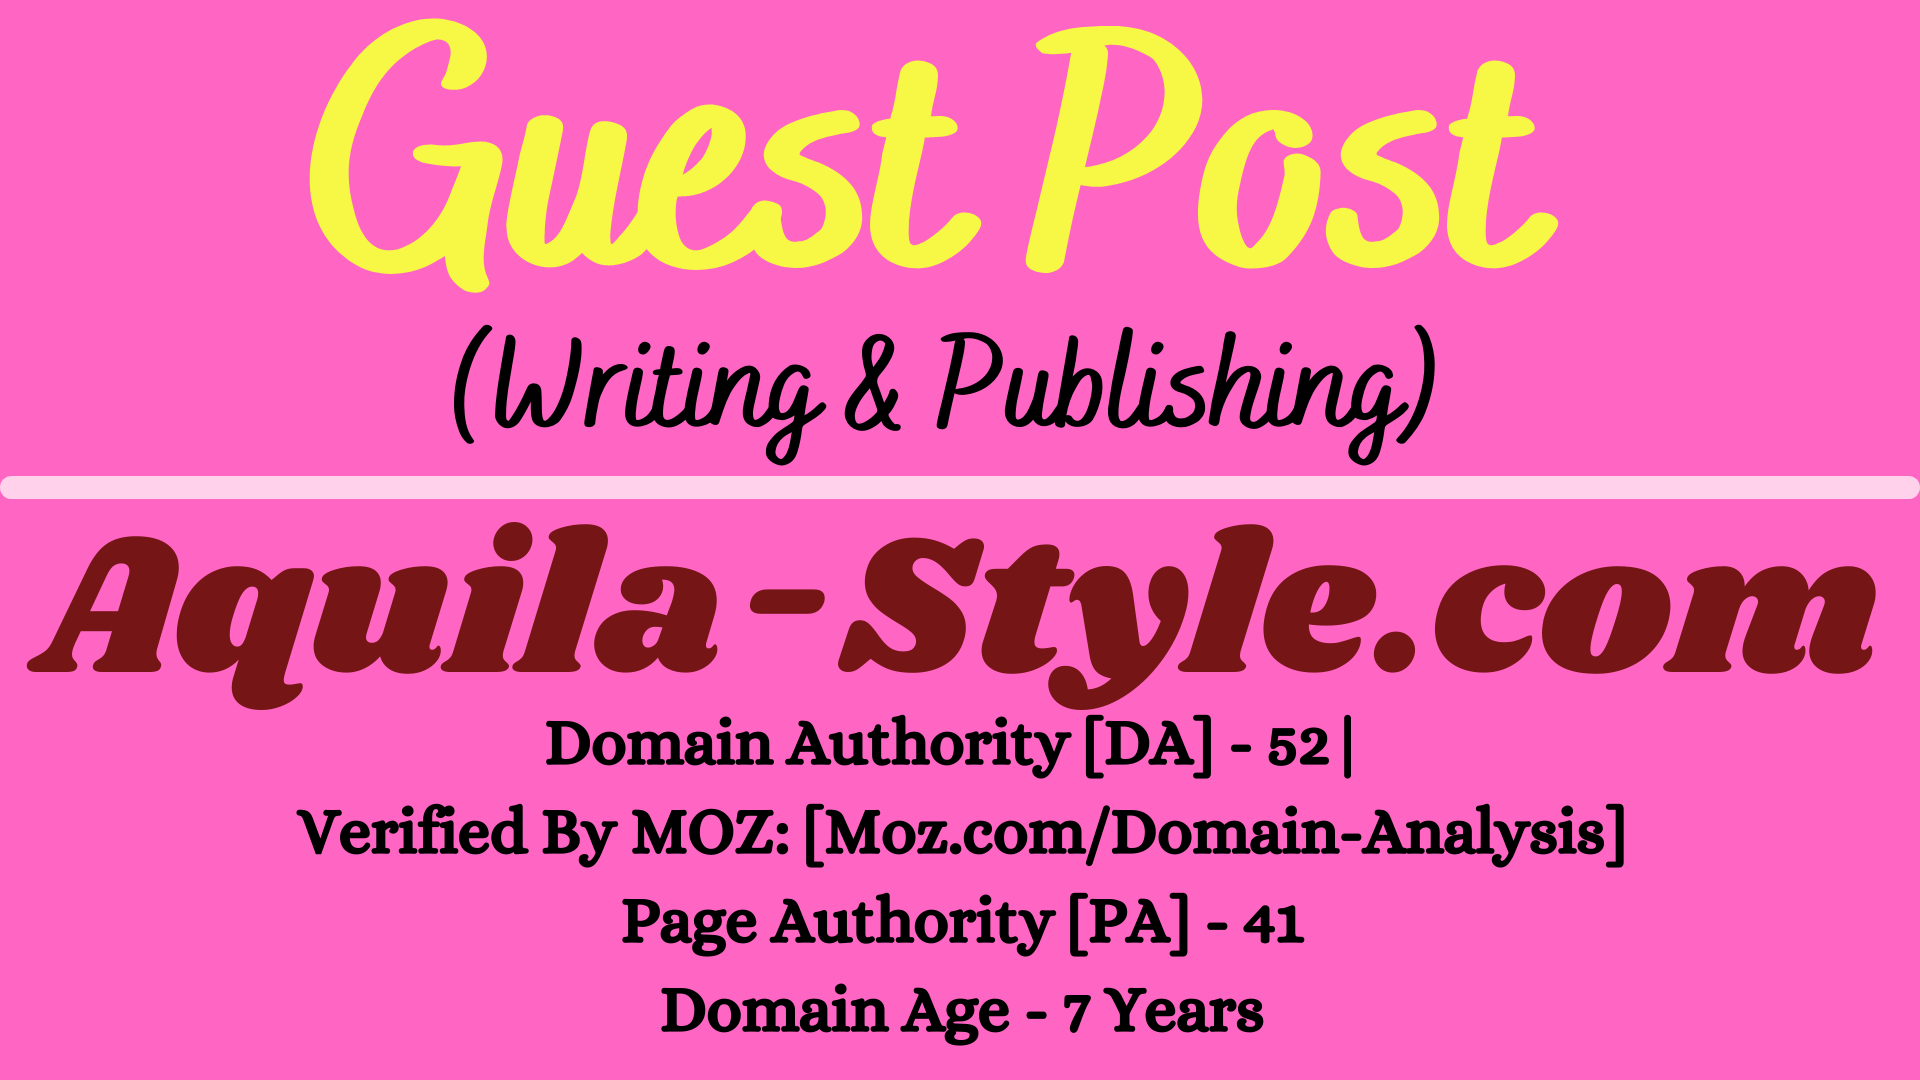 I will provide Guest Post on Aquila-Style. com